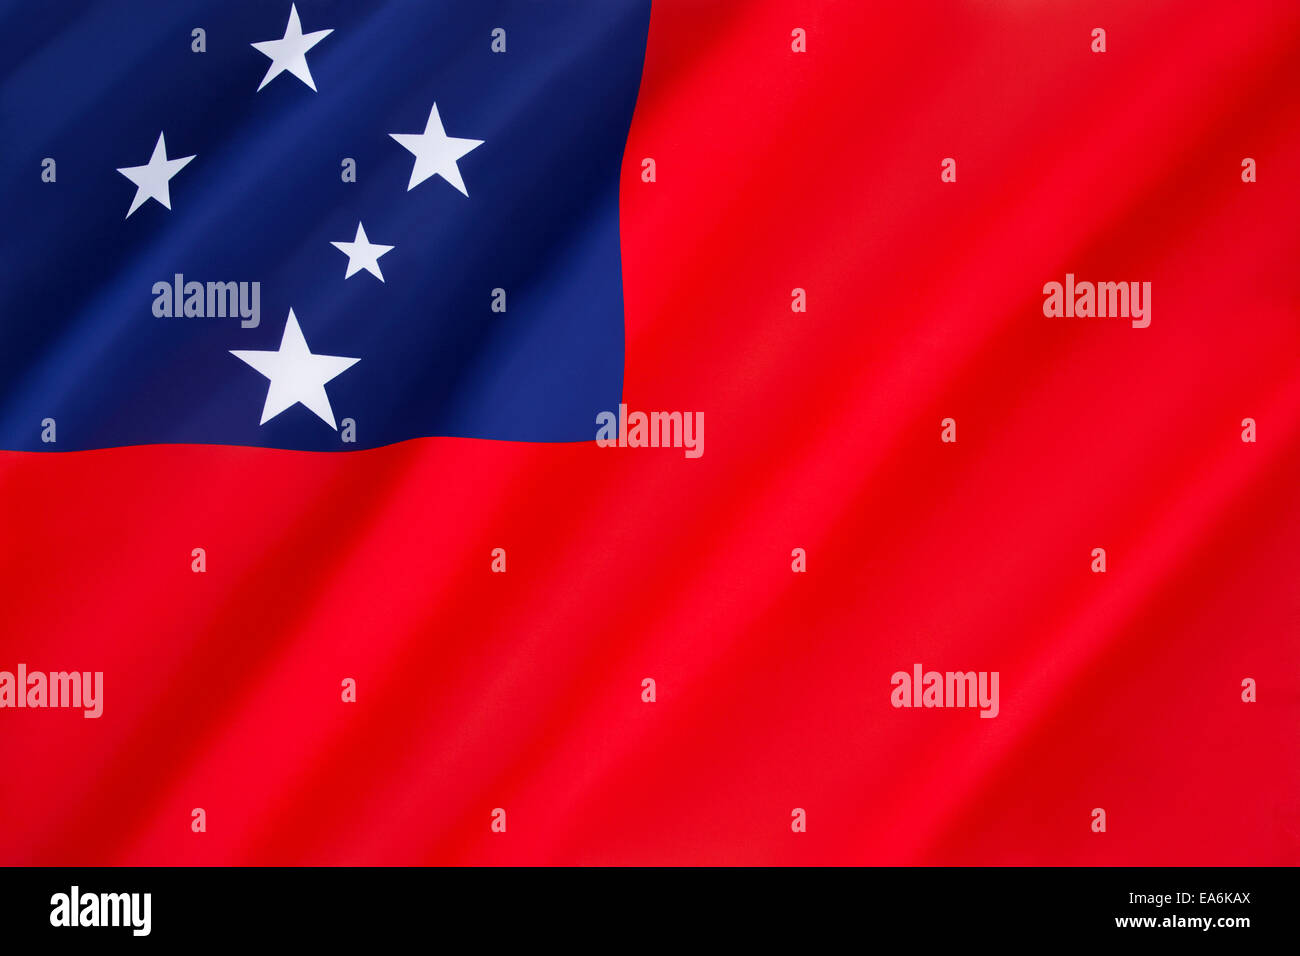 Flag of Samoa - Stock Image